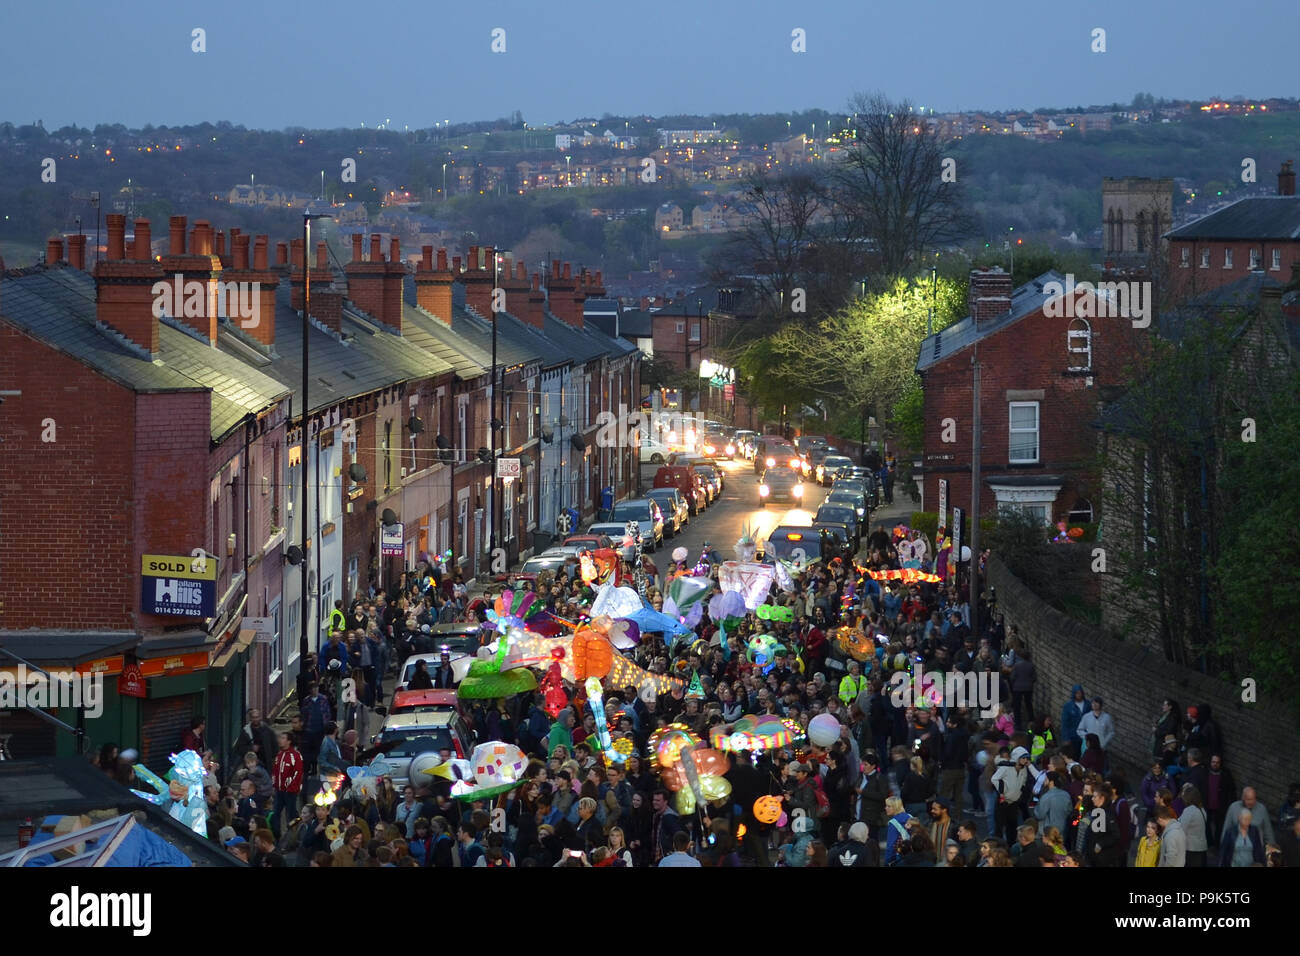 The Sharrow Lantern Festival 2017 in Sheffield, England - Stock Image